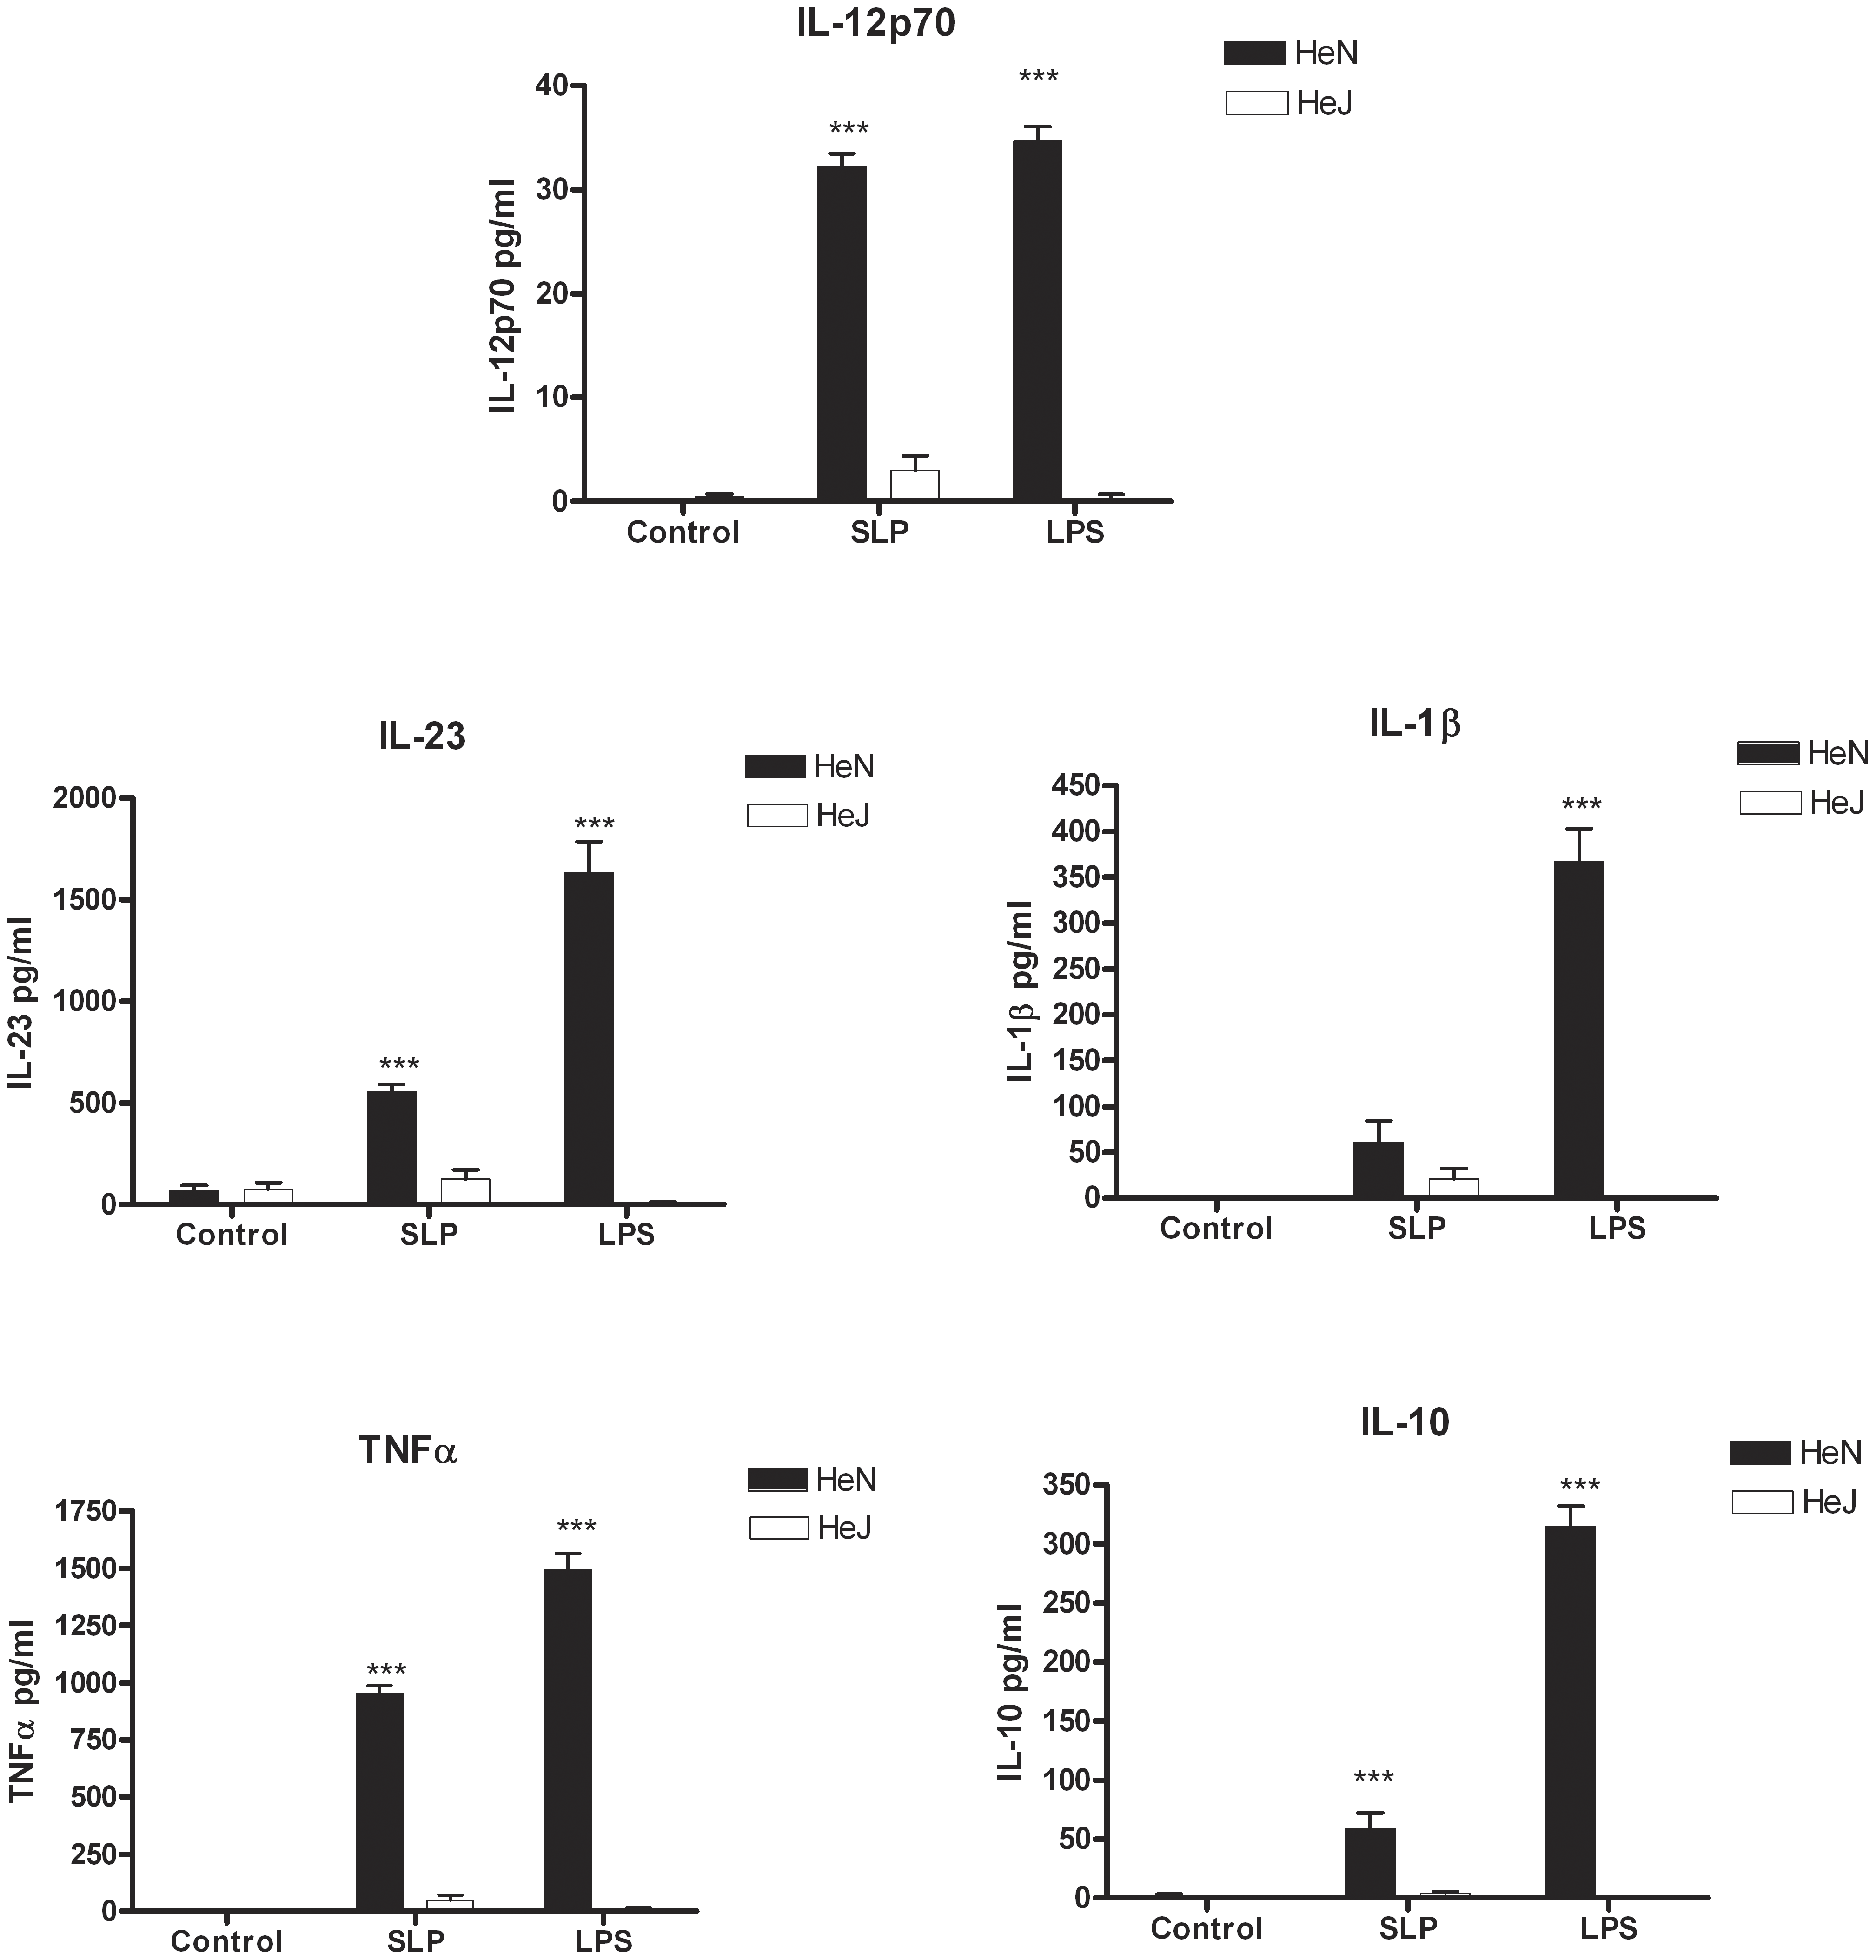 SLPs induce cytokine production in BMDC via TLR4.